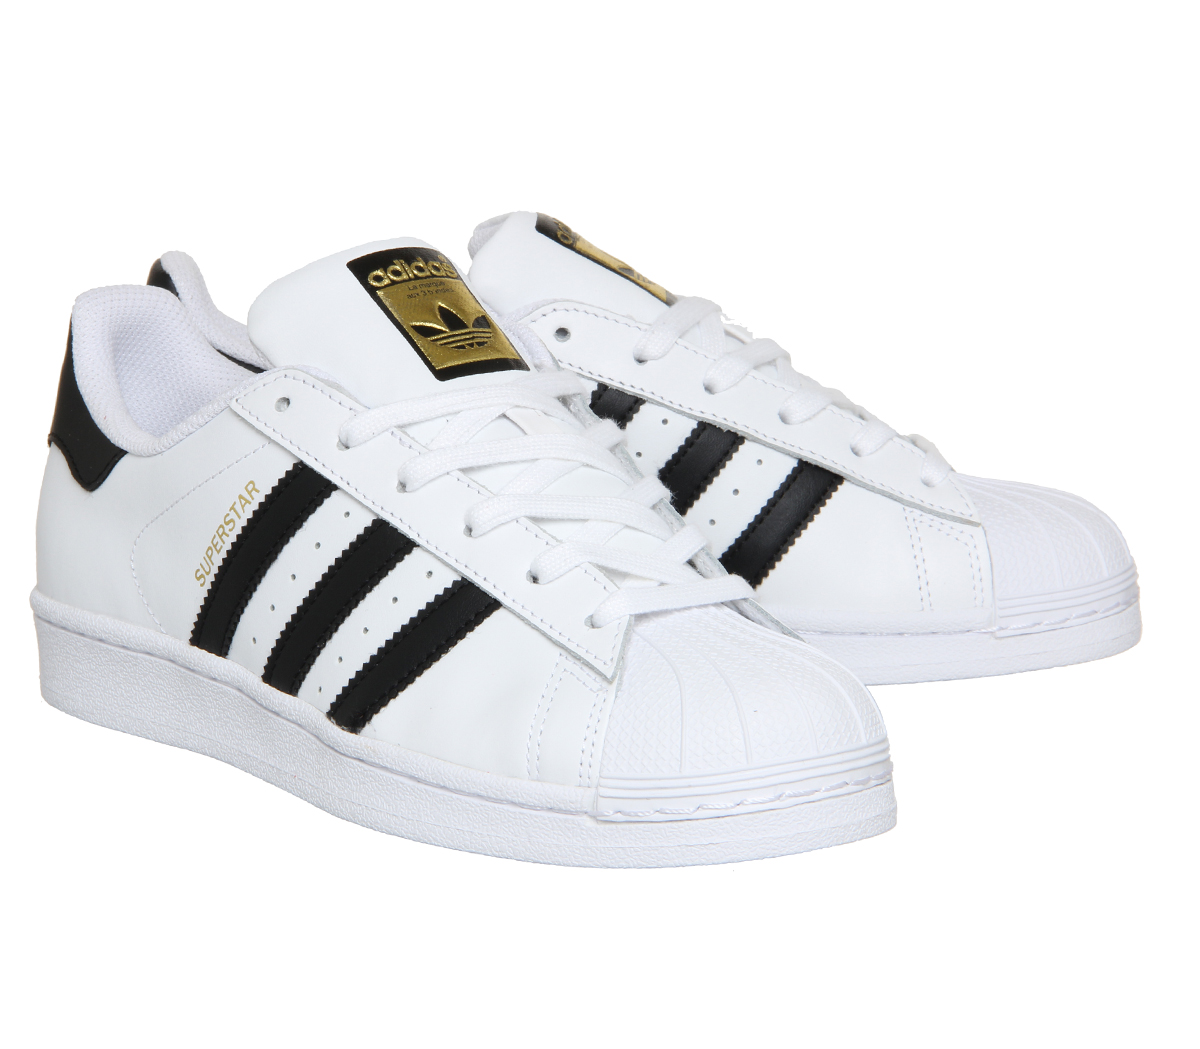 [PHOTOS] Cheap Adidas x Star Wars Superstar 's News